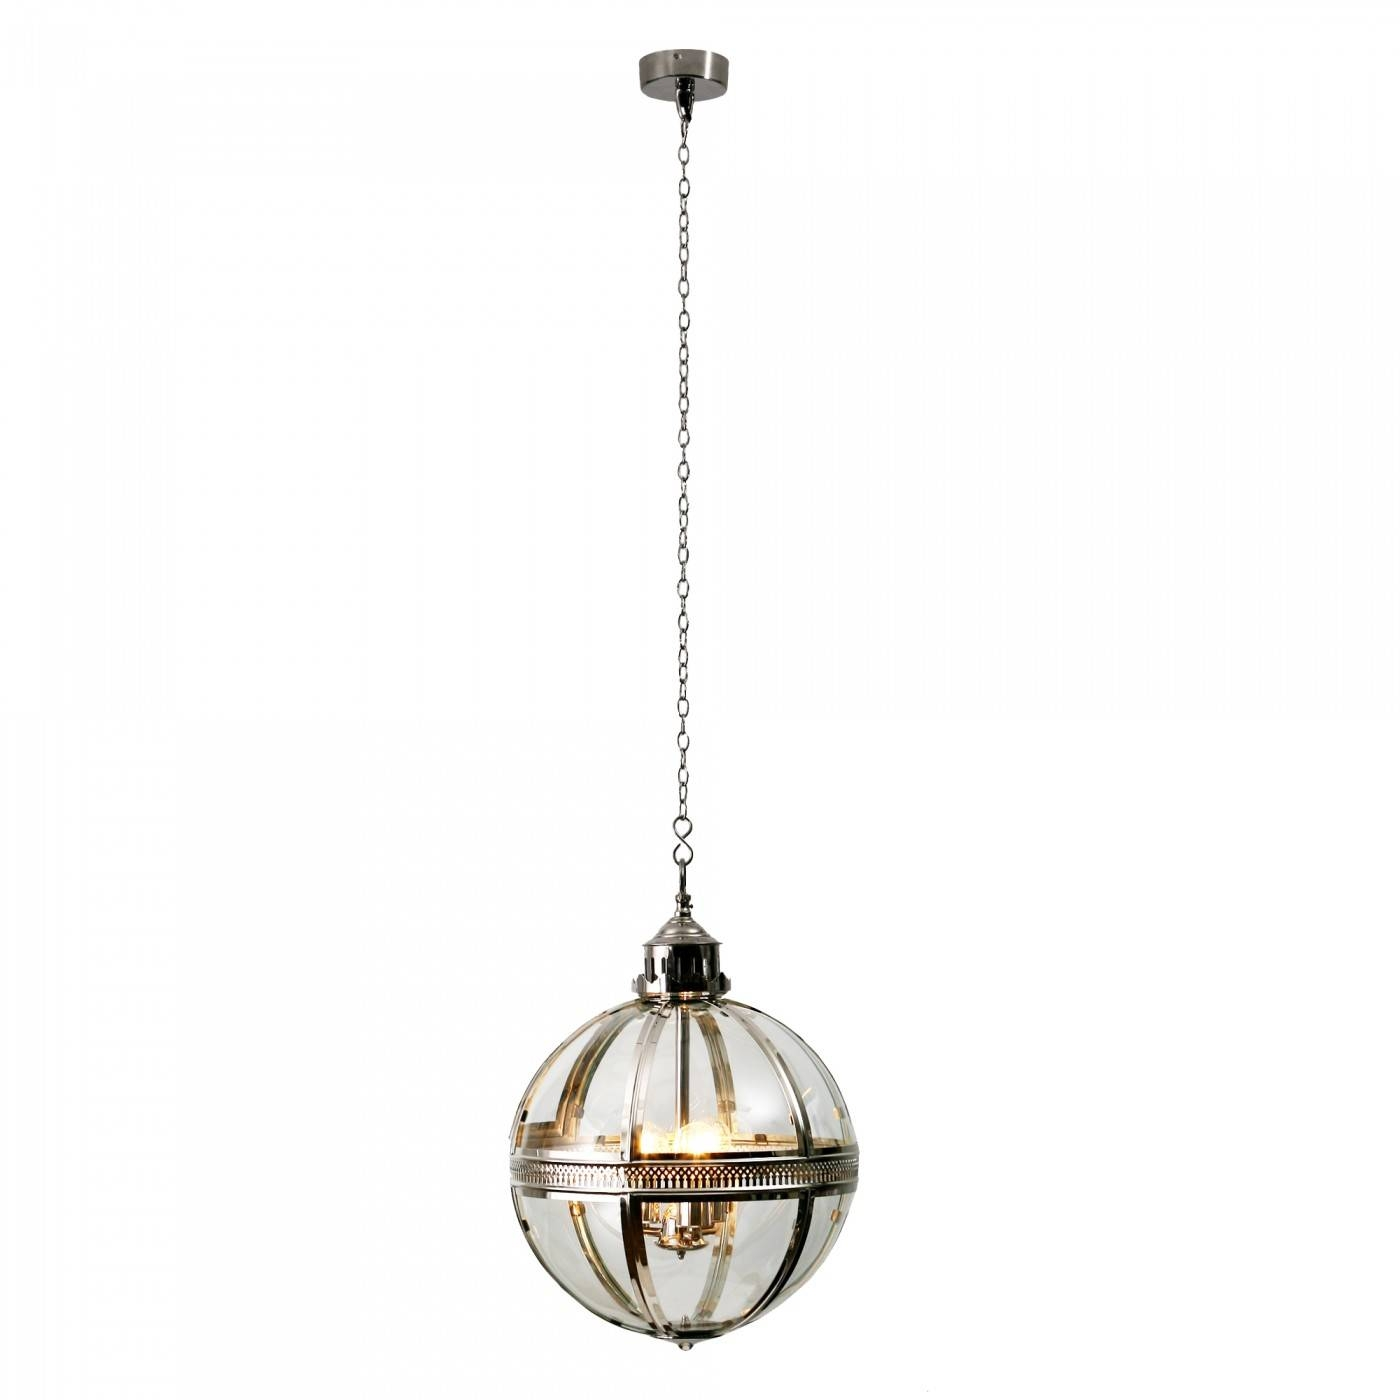 Glass Orb Pendant Light - Baby-Exit pertaining to Glass Orb Pendant Lights (Image 10 of 15)